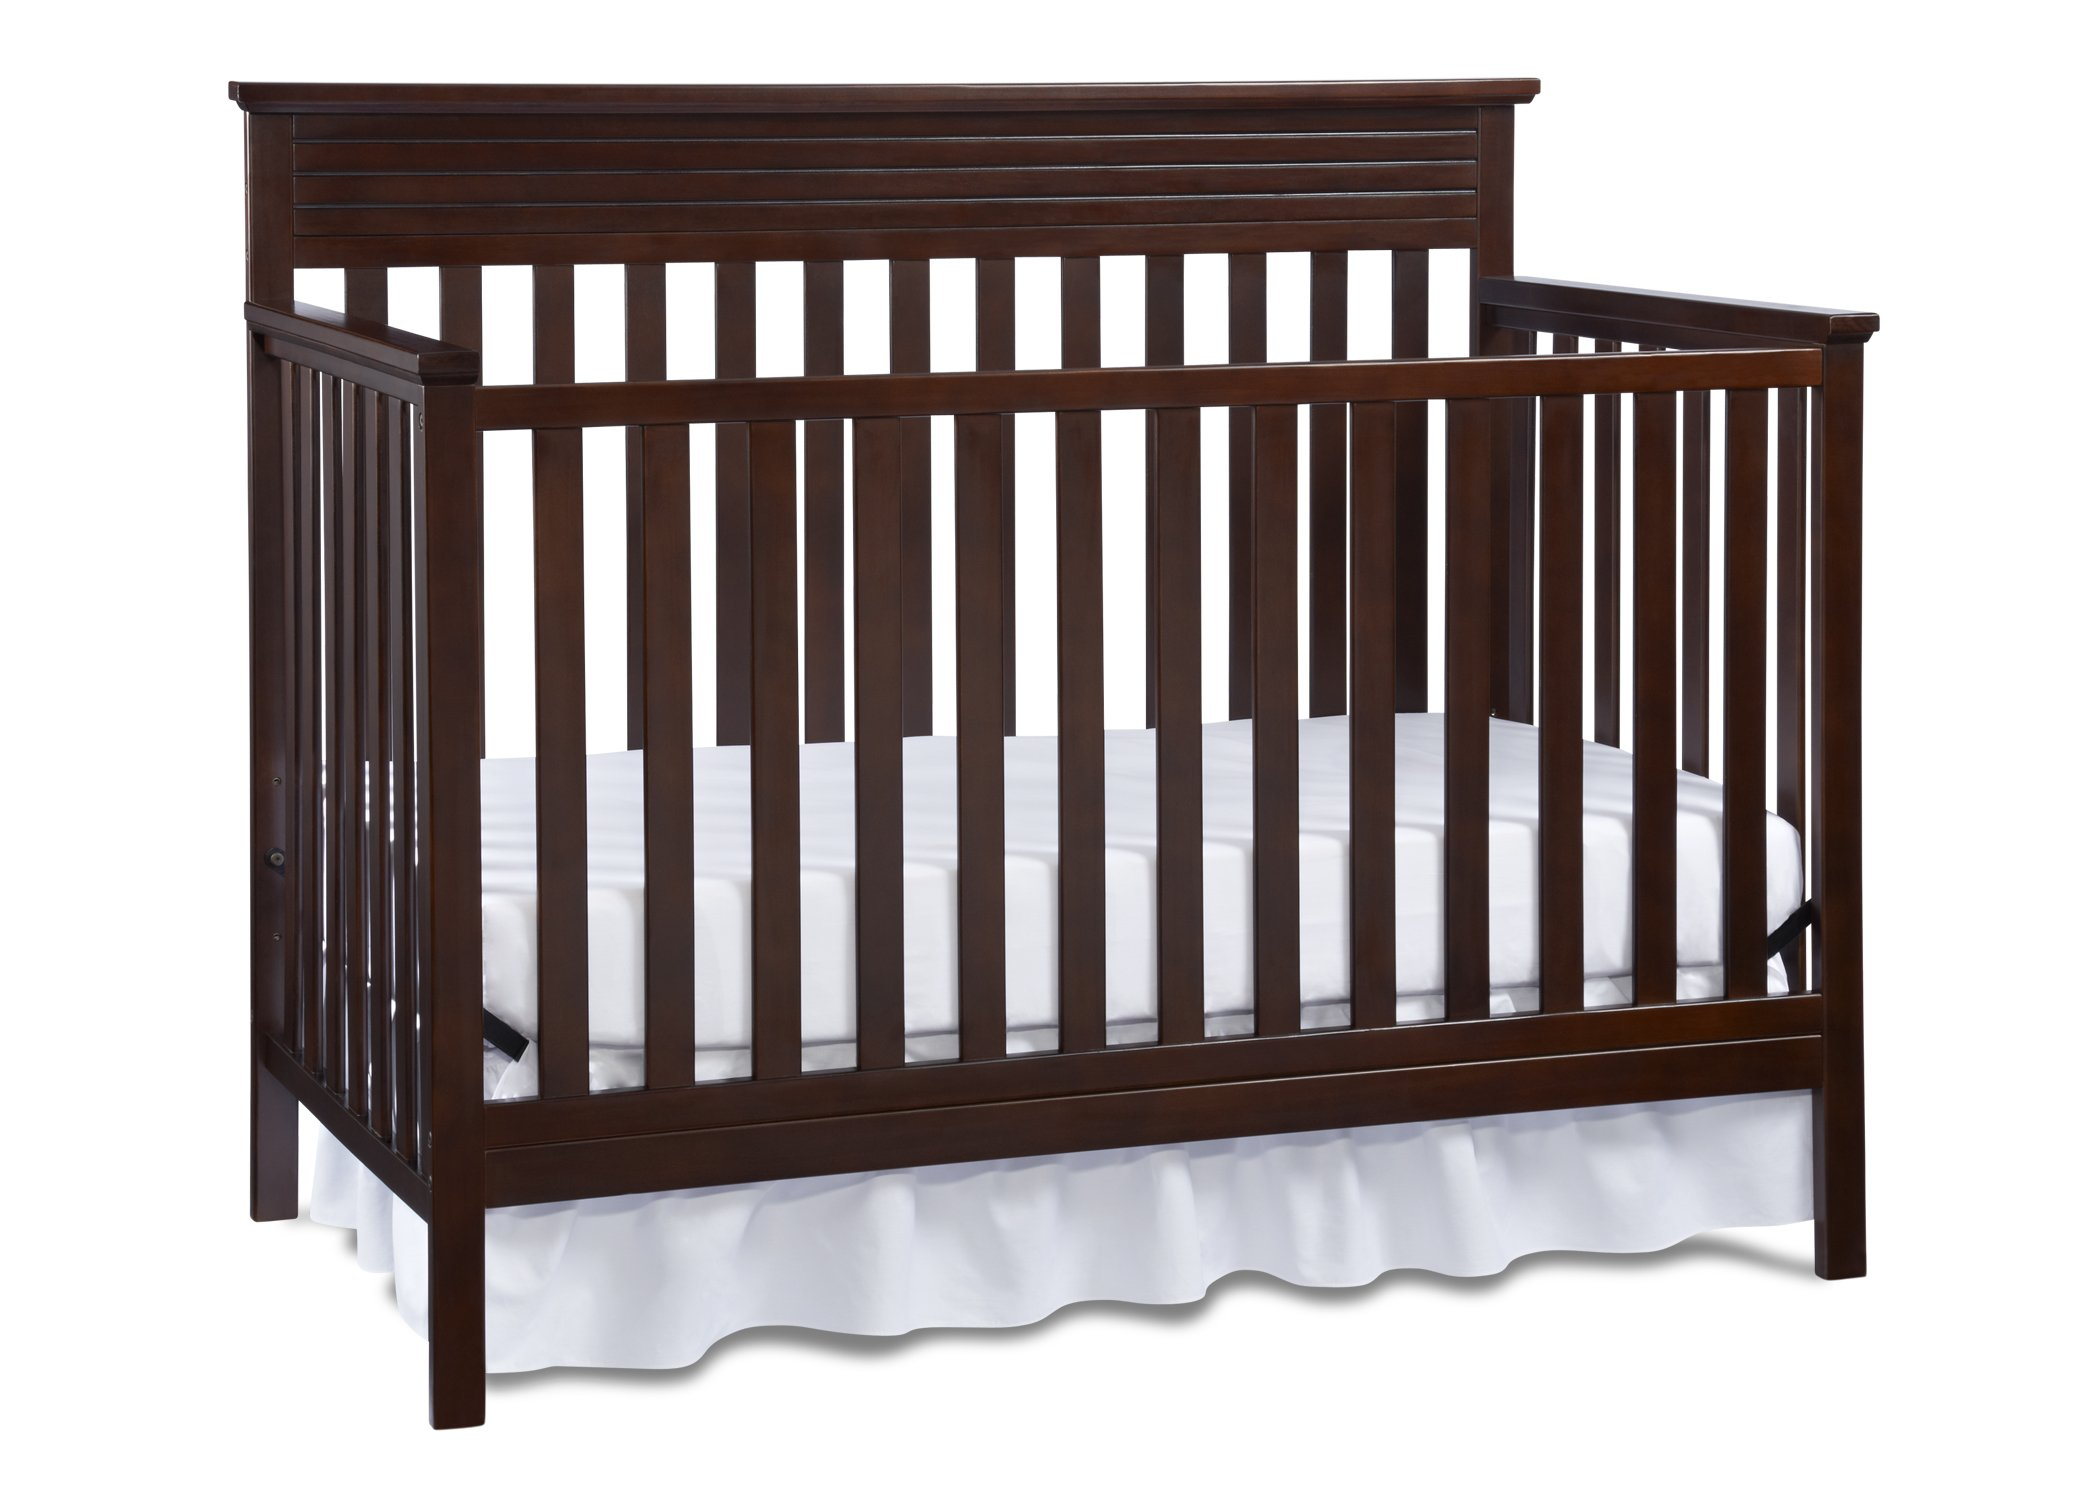 Fisher-Price Newbury 4-in-1 Convertible Crib, Espresso